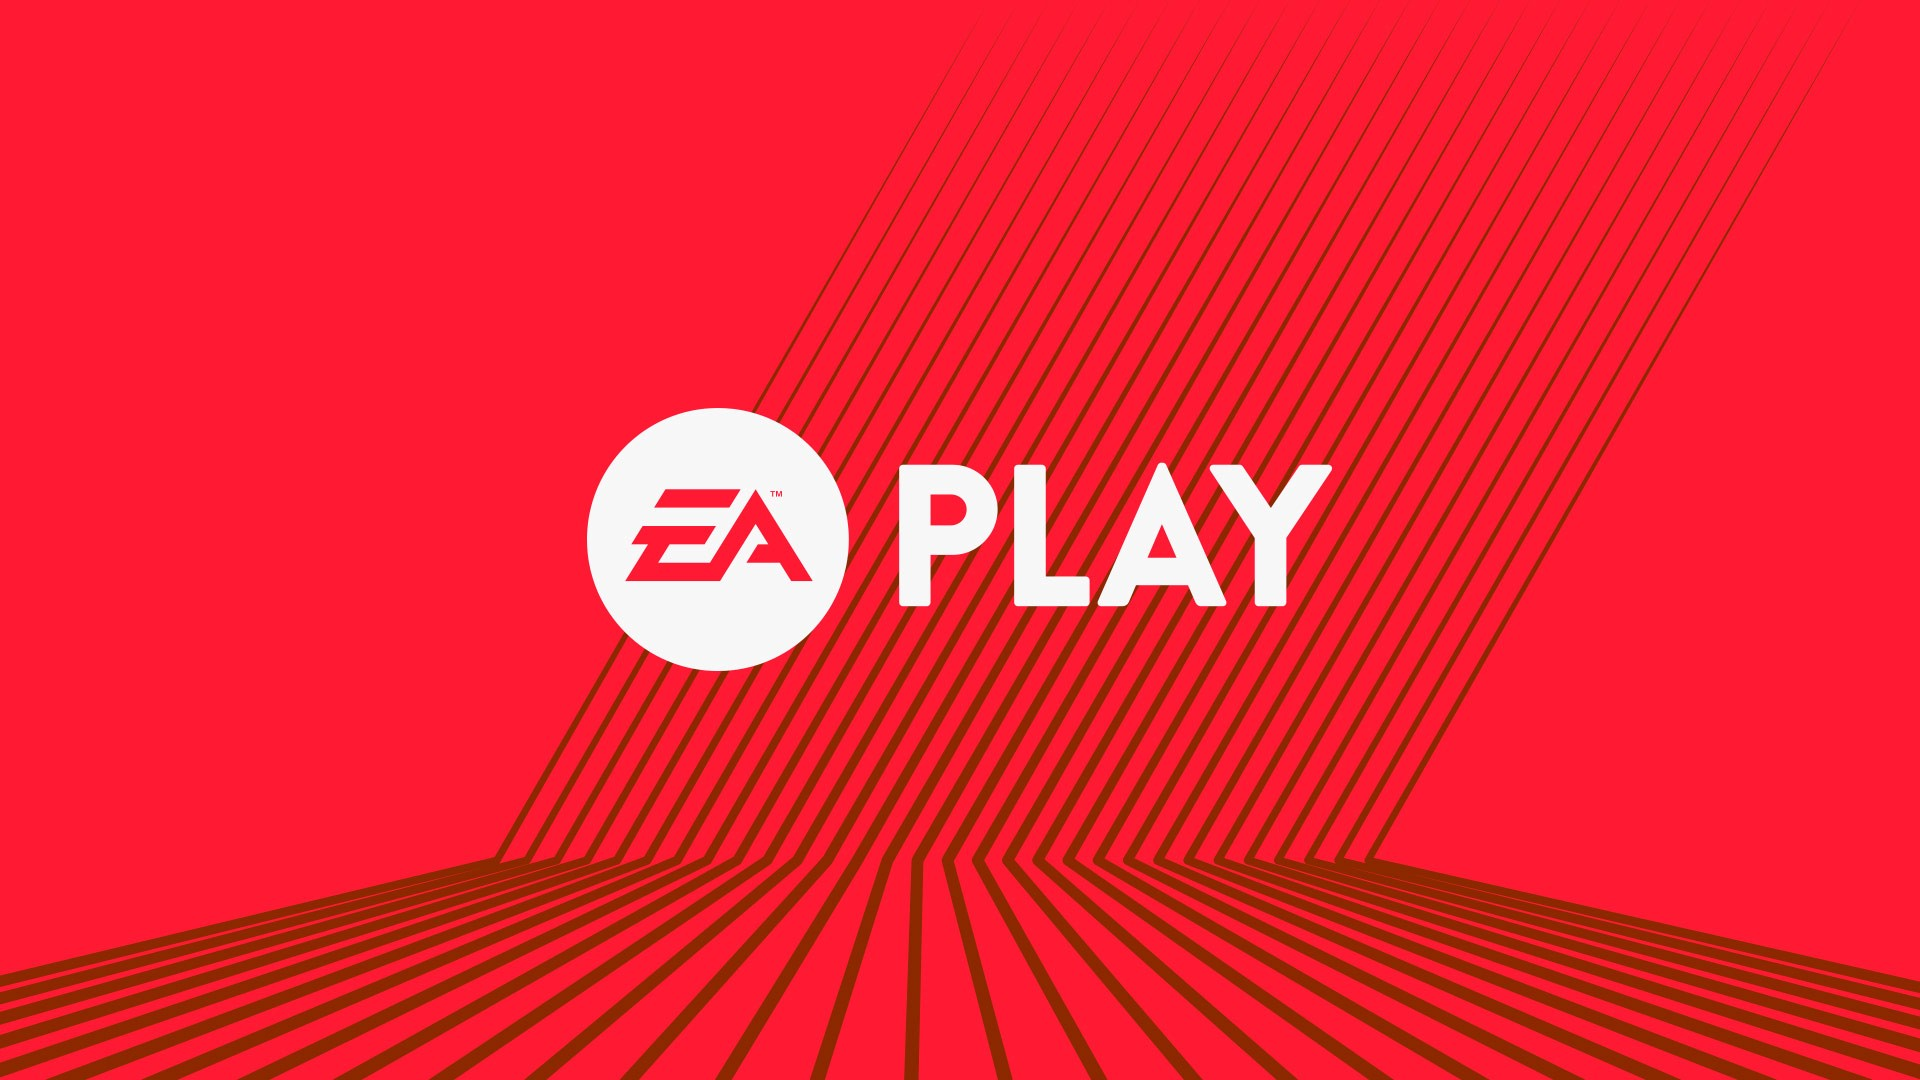 EA play 2019 no contará con conferencia este año